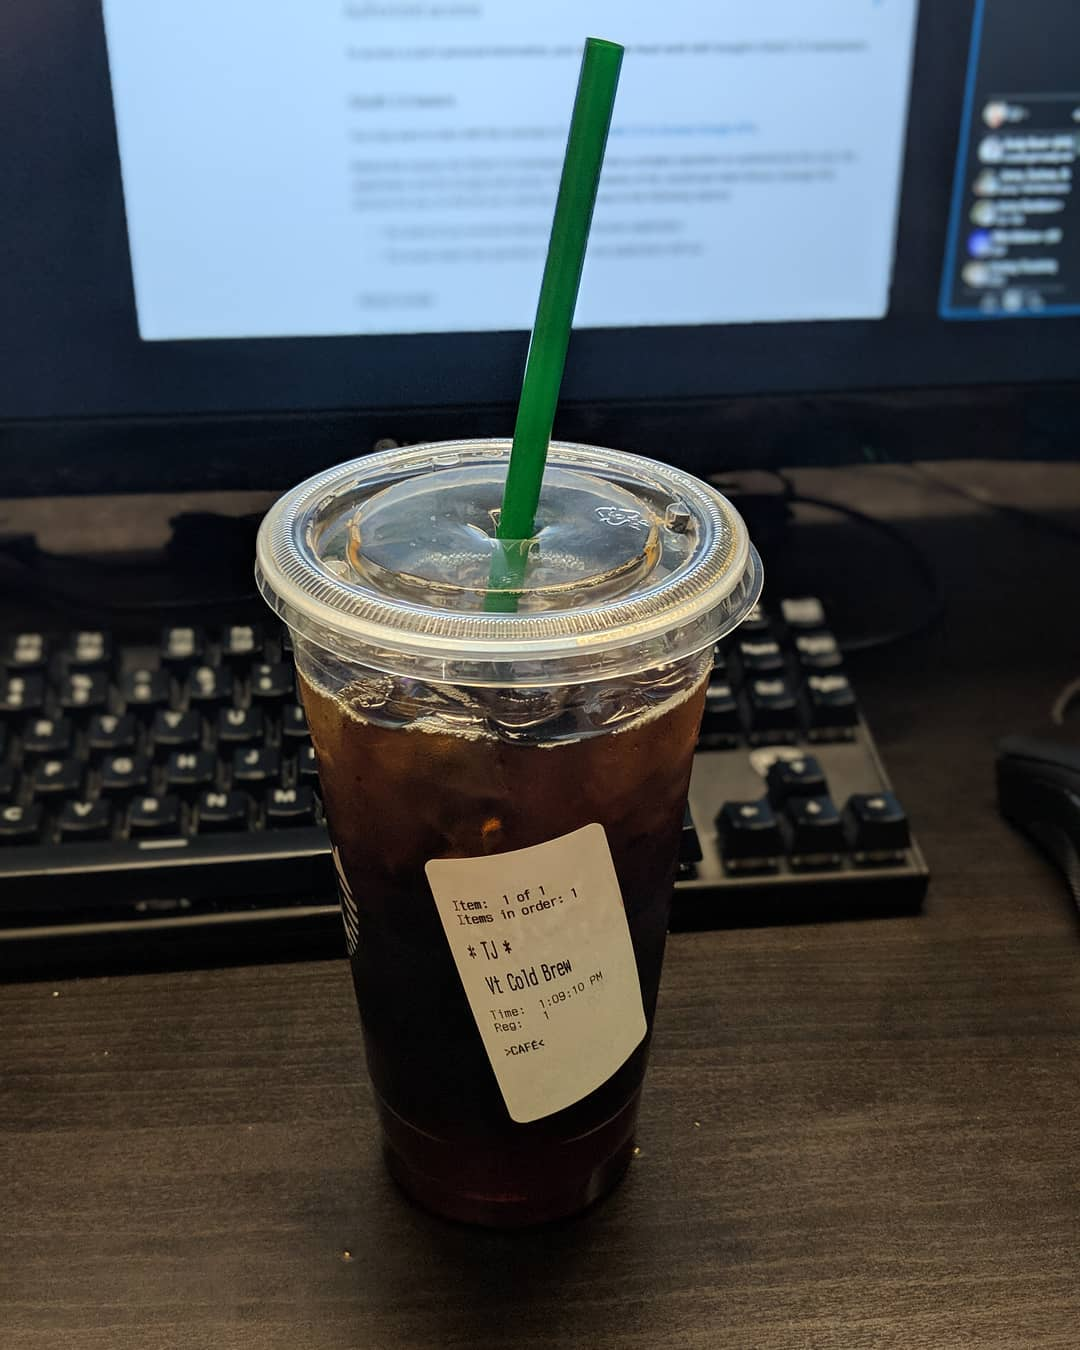 Sometimes Starbucks makes me feel a bit like Odin. I seem to have as many names as there are winds, as many titles as there are ways to die. Now I just need a couple ravens and wolves and people will start calling me alldaddy.